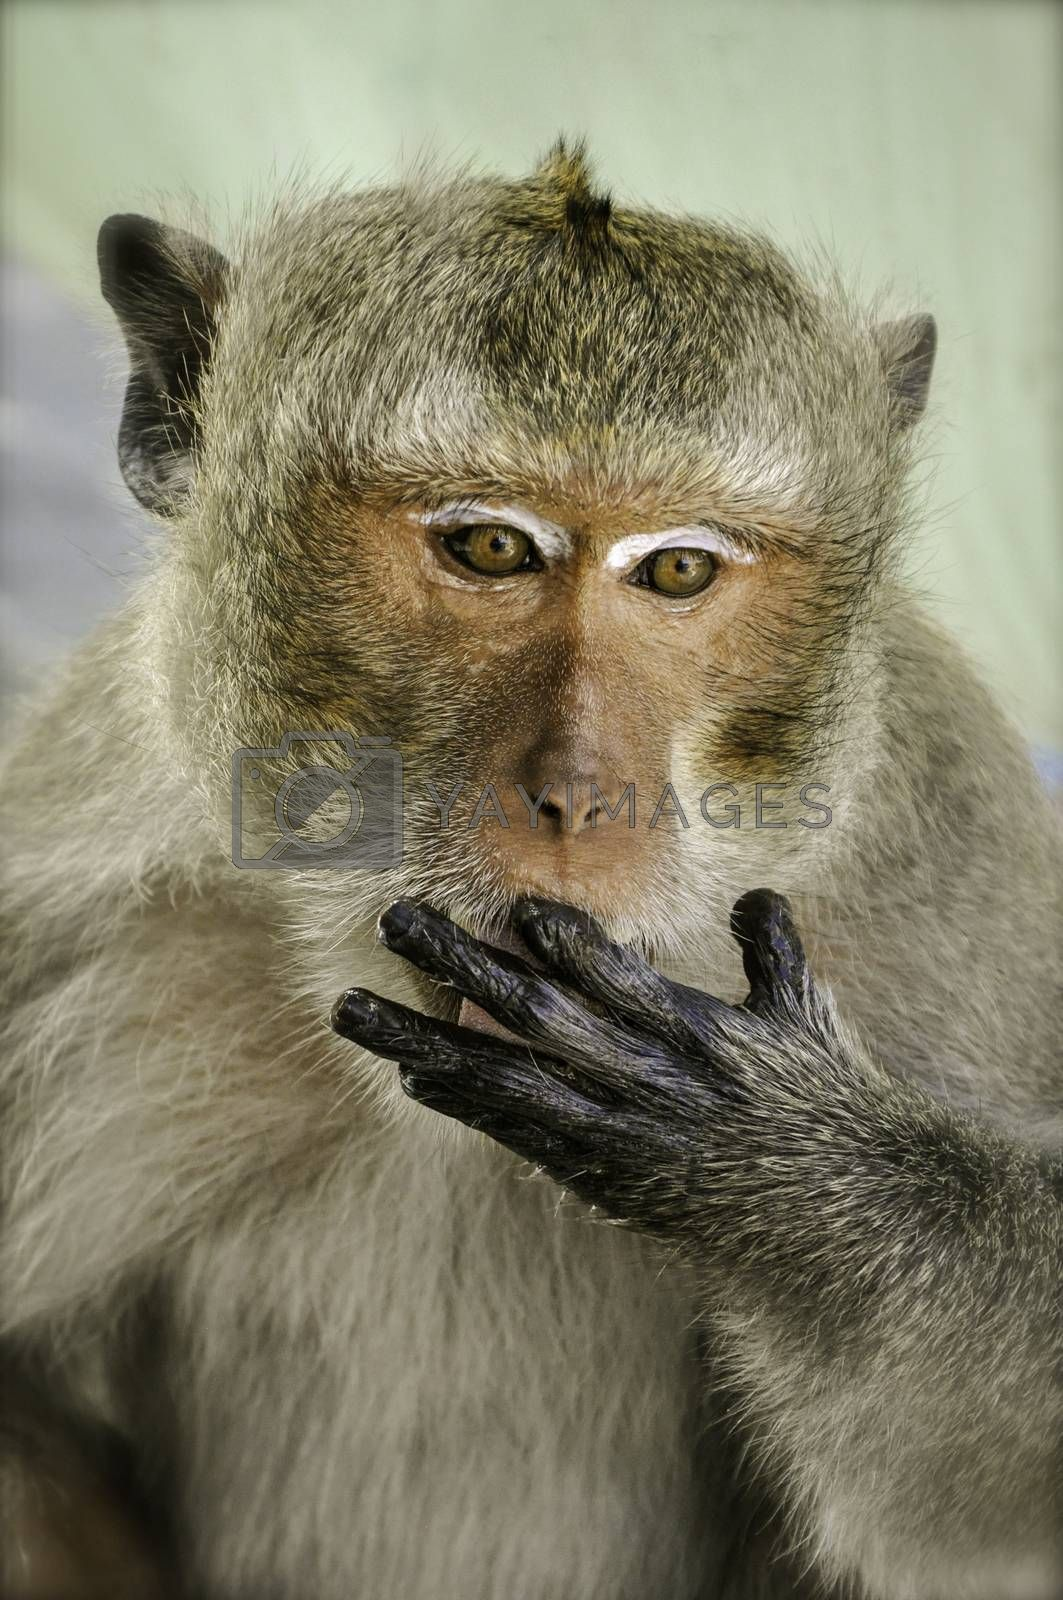 A close up portrait of a macaque monkey licking it's finger whilst eating.